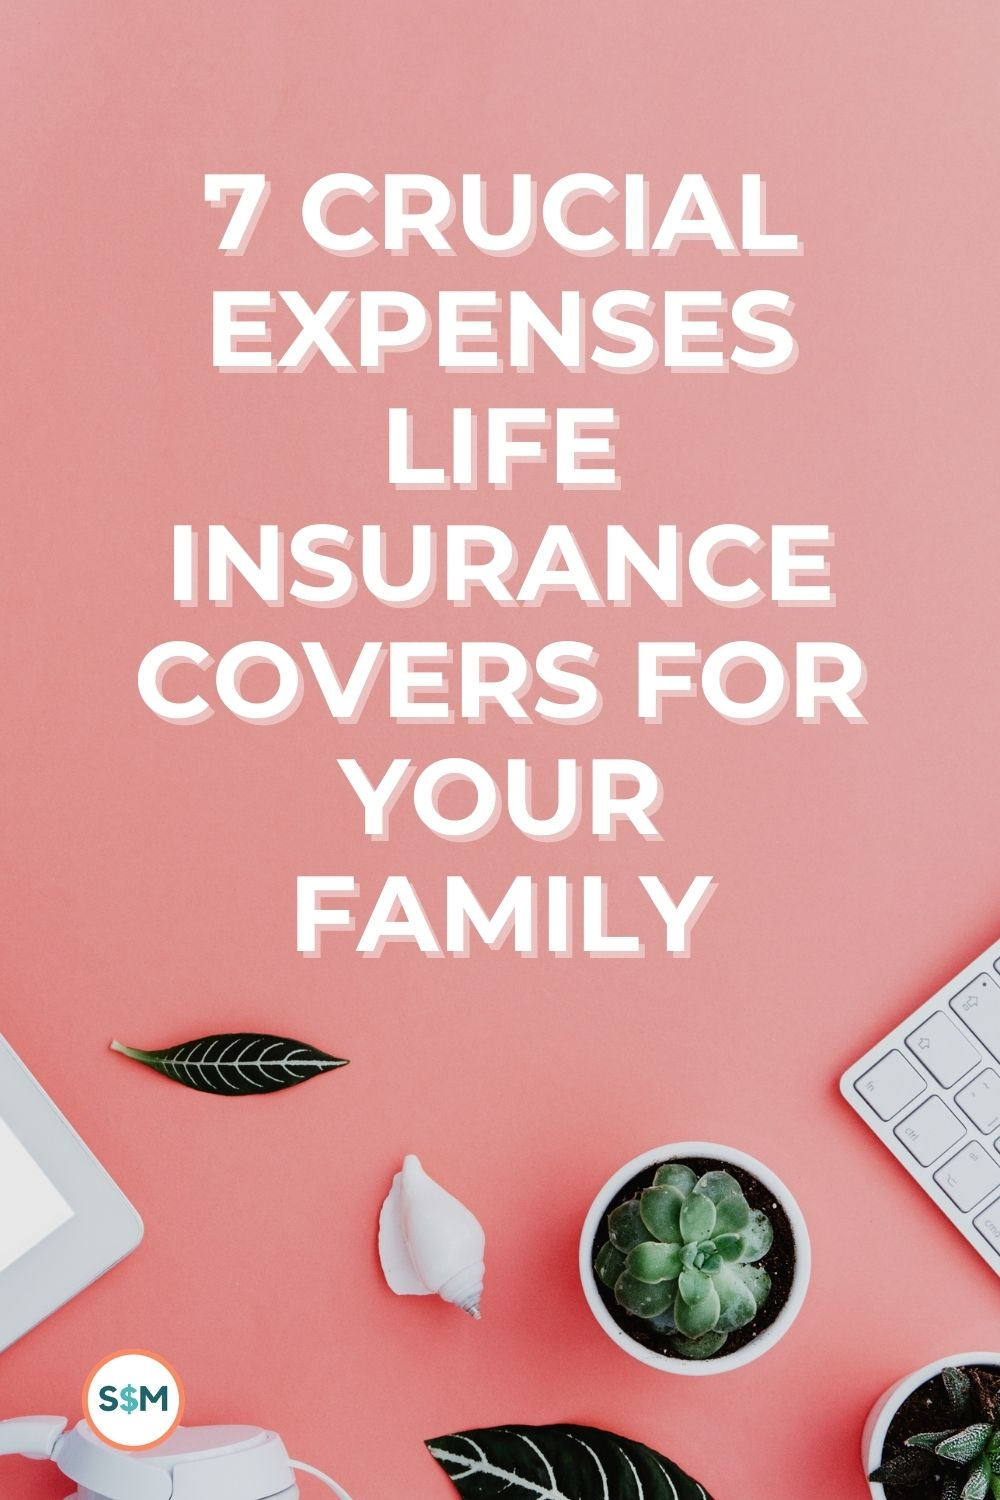 7 Crucial Expenses Life Insurance Covers for Your Family